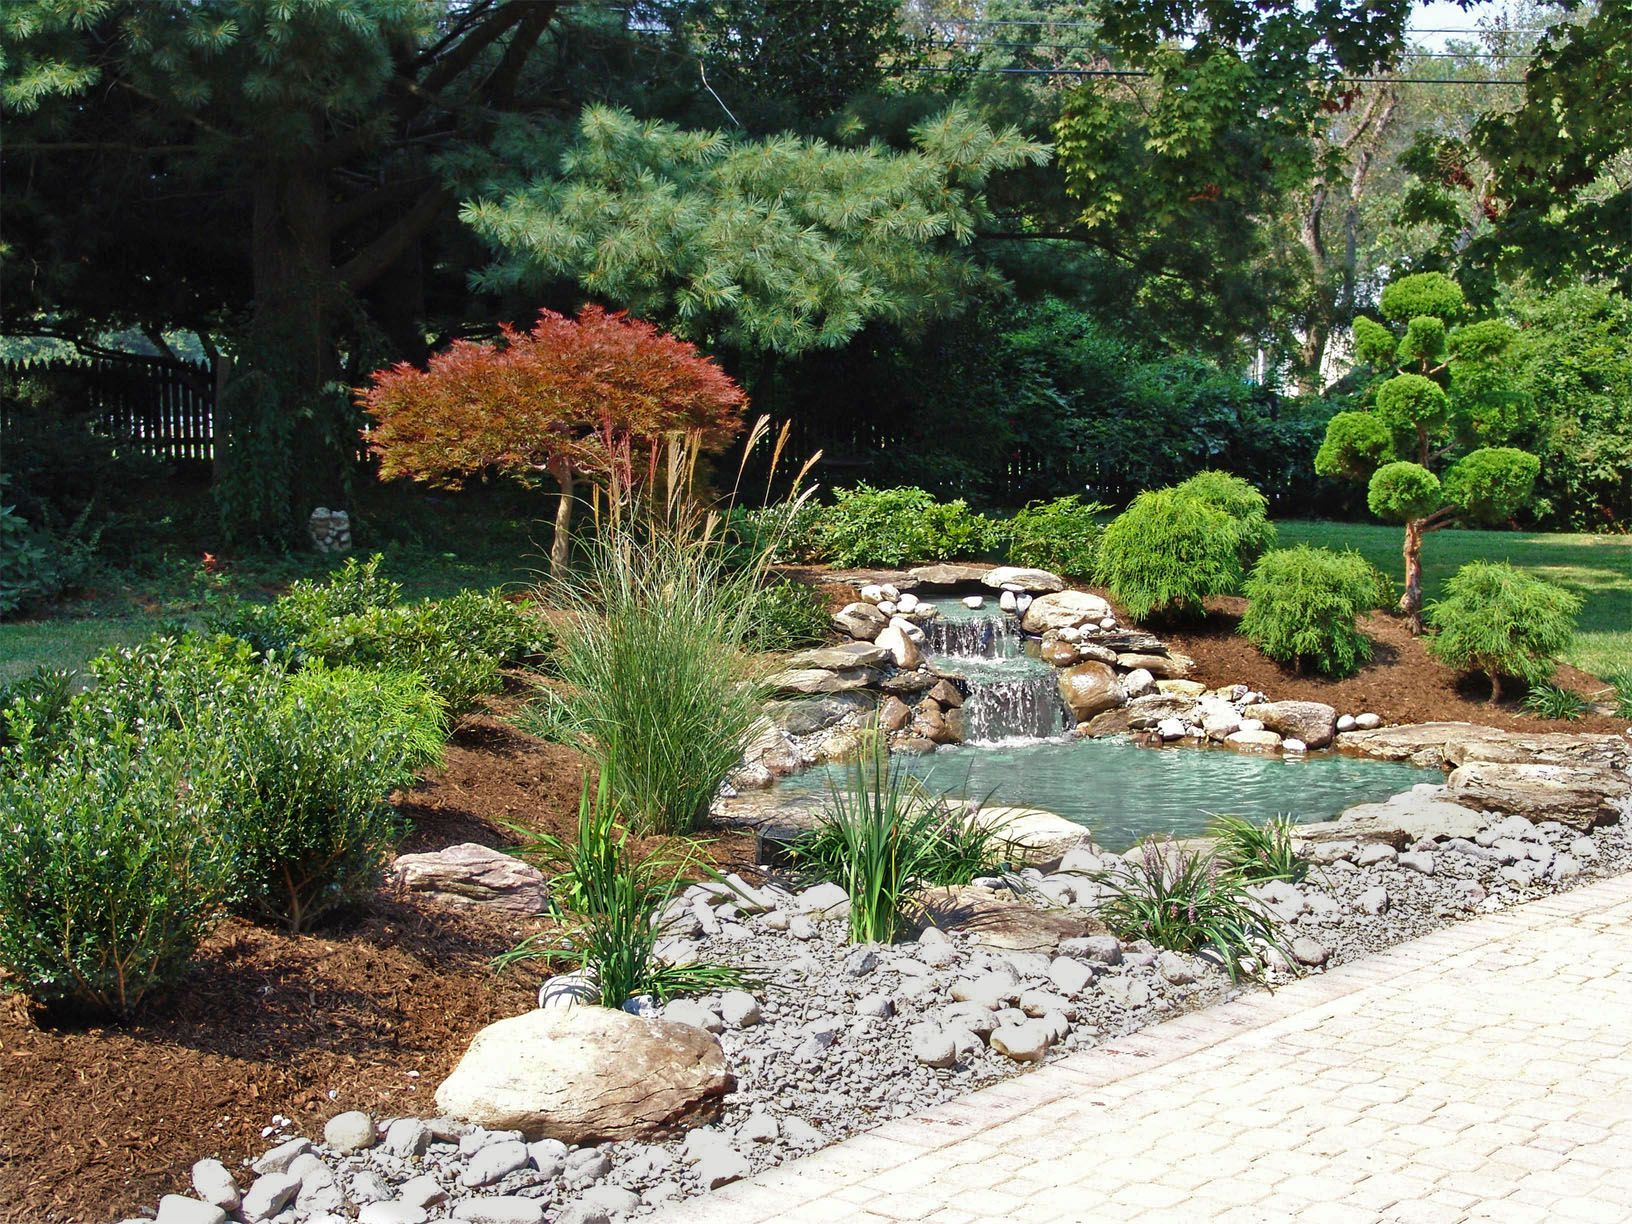 Japanese garden landscape design with waterfall and pond for Japanese landscape design